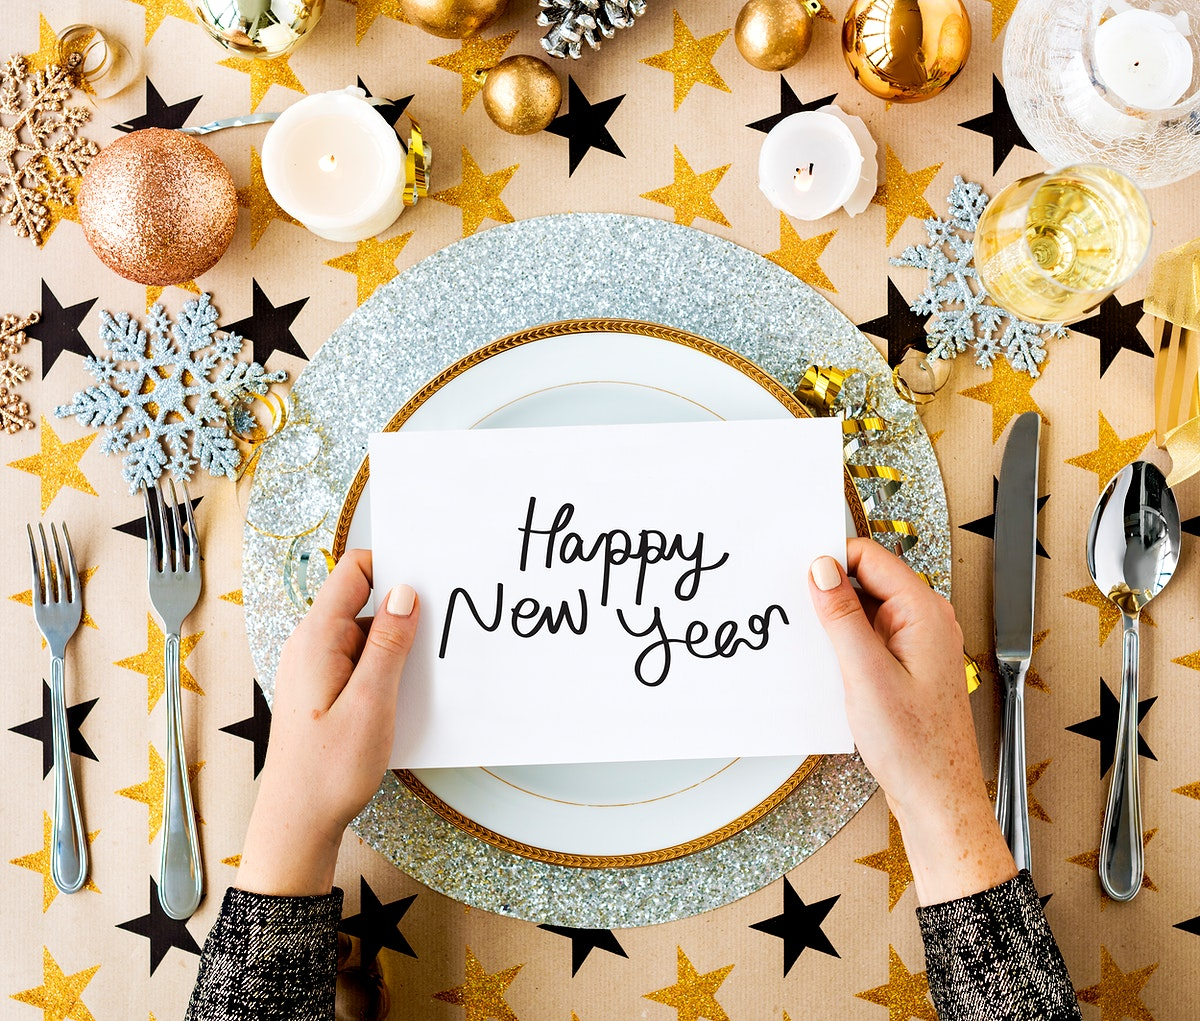 Happy New Year card and festive table settings